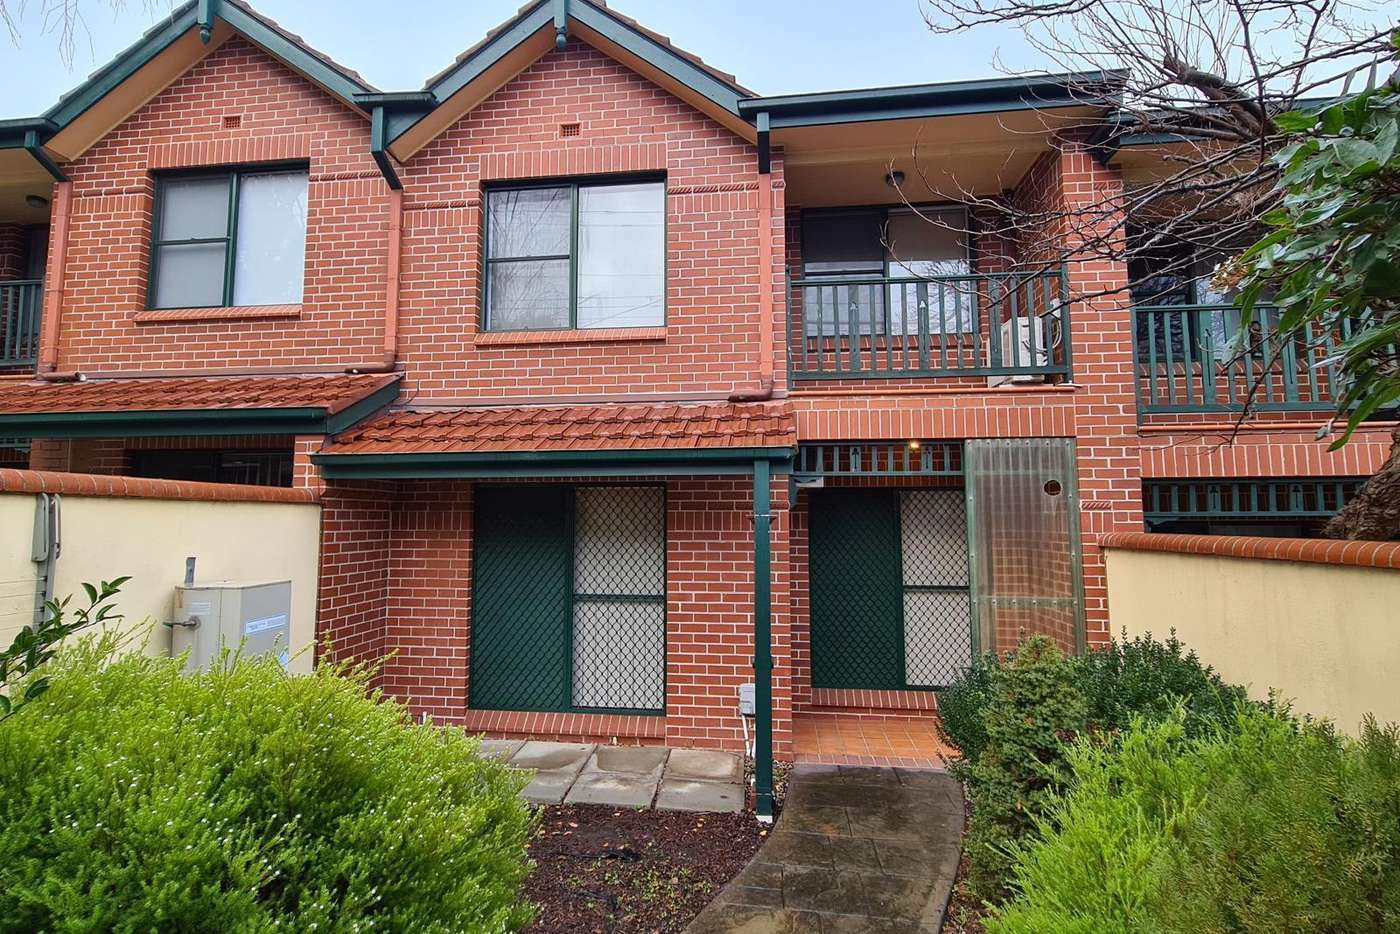 Main view of Homely townhouse listing, 2/2a Bellevue Avenue, Doncaster East VIC 3109